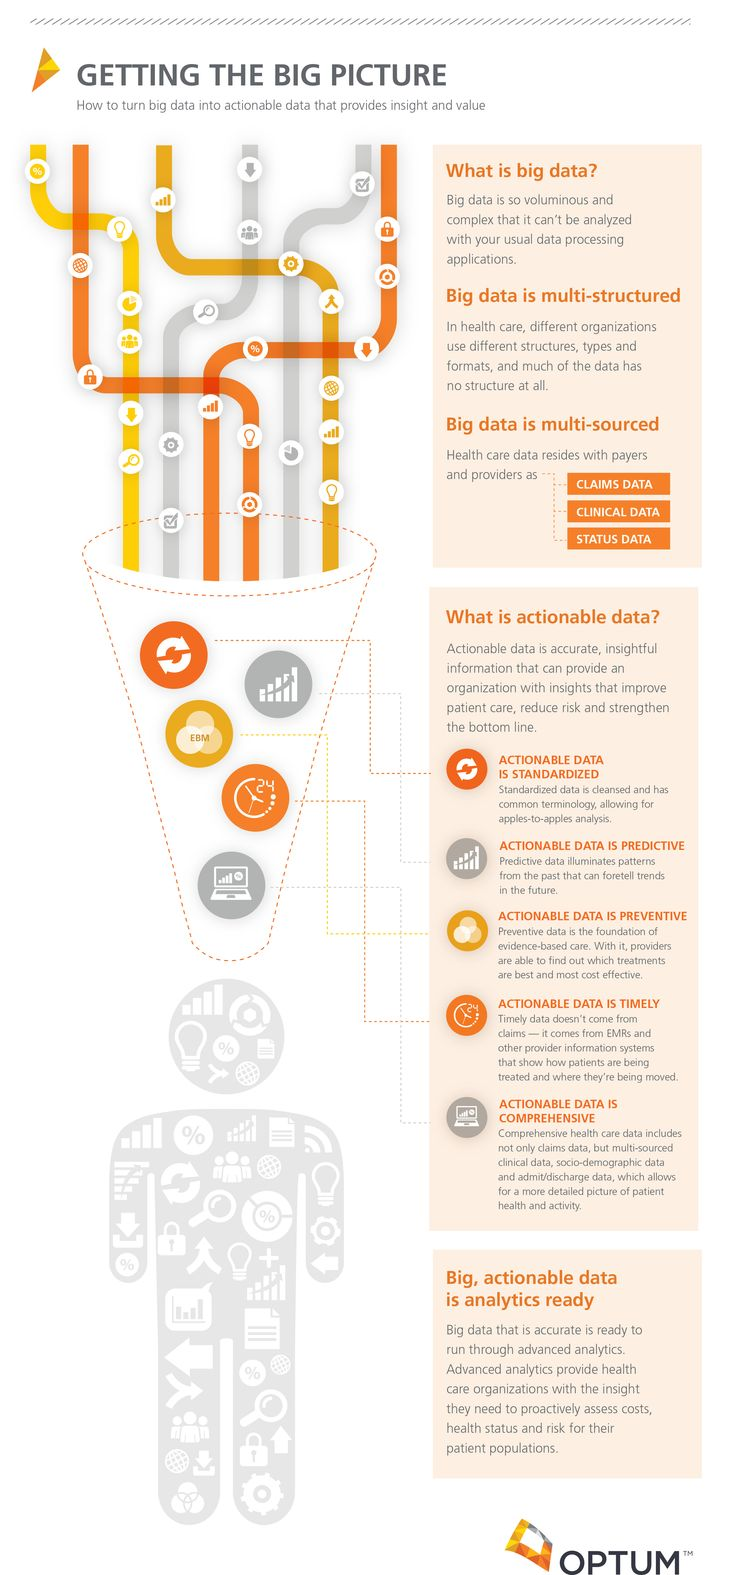 OptumVoice: The 7 Steps For Using Big Data For Effective Care Coordination [Infographic] - Forbes